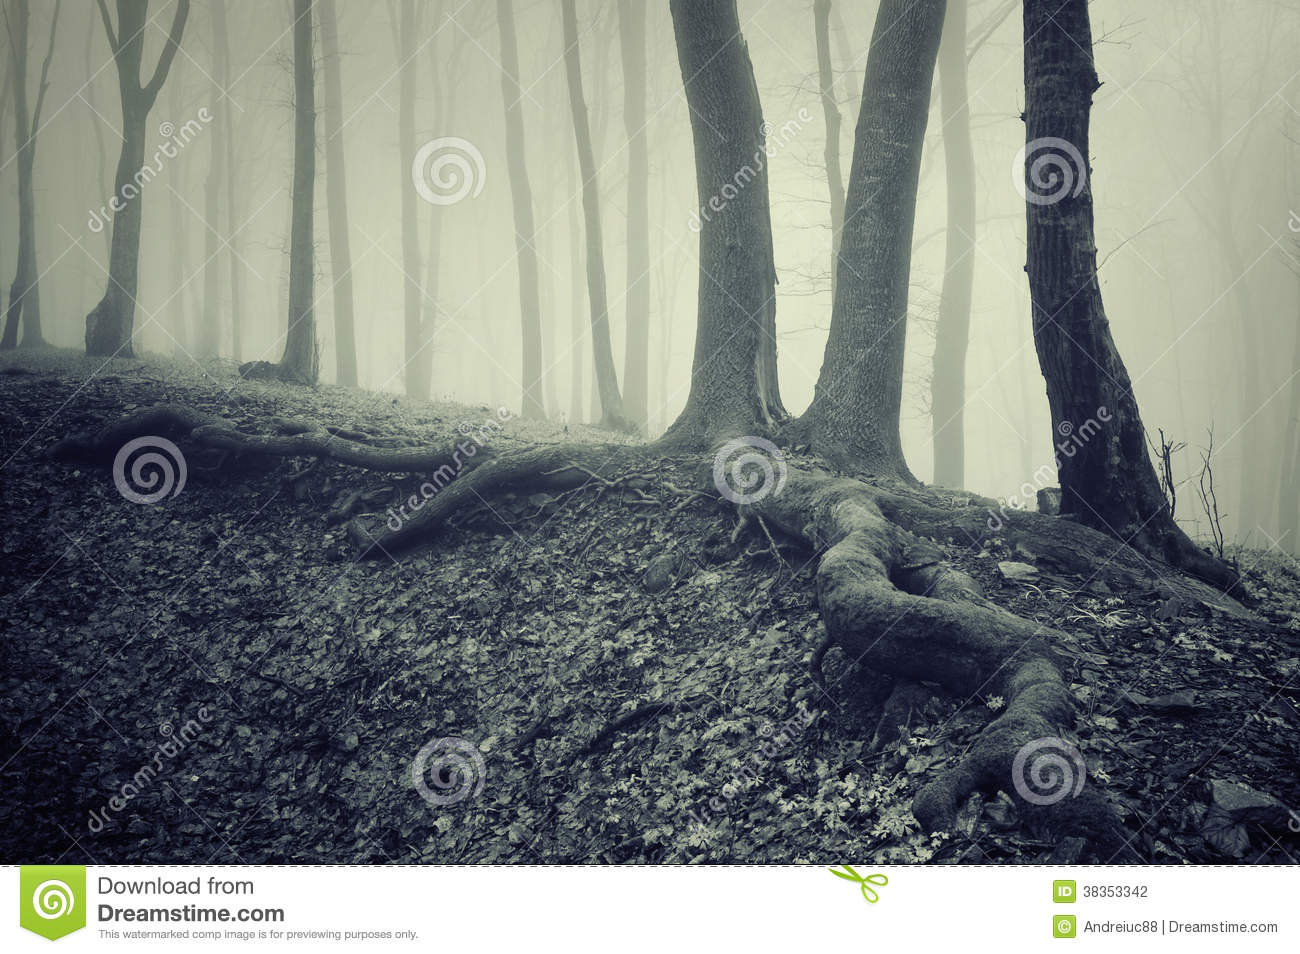 Trees With Big Roots In A Dark Creepy Mysterious Forest